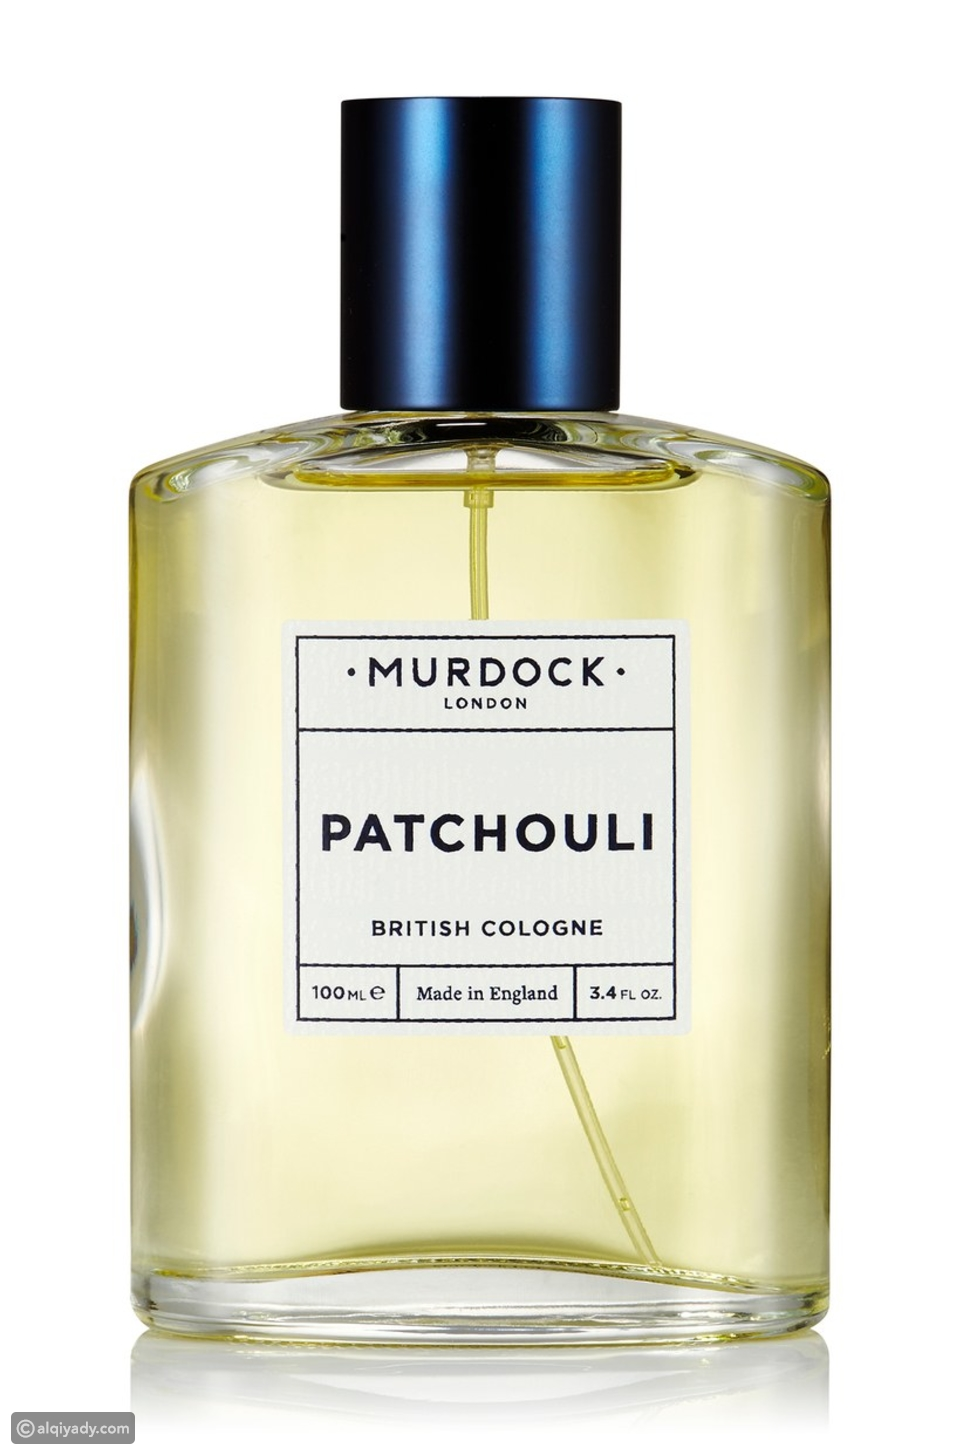 Murdock London Patchouli British Cologne